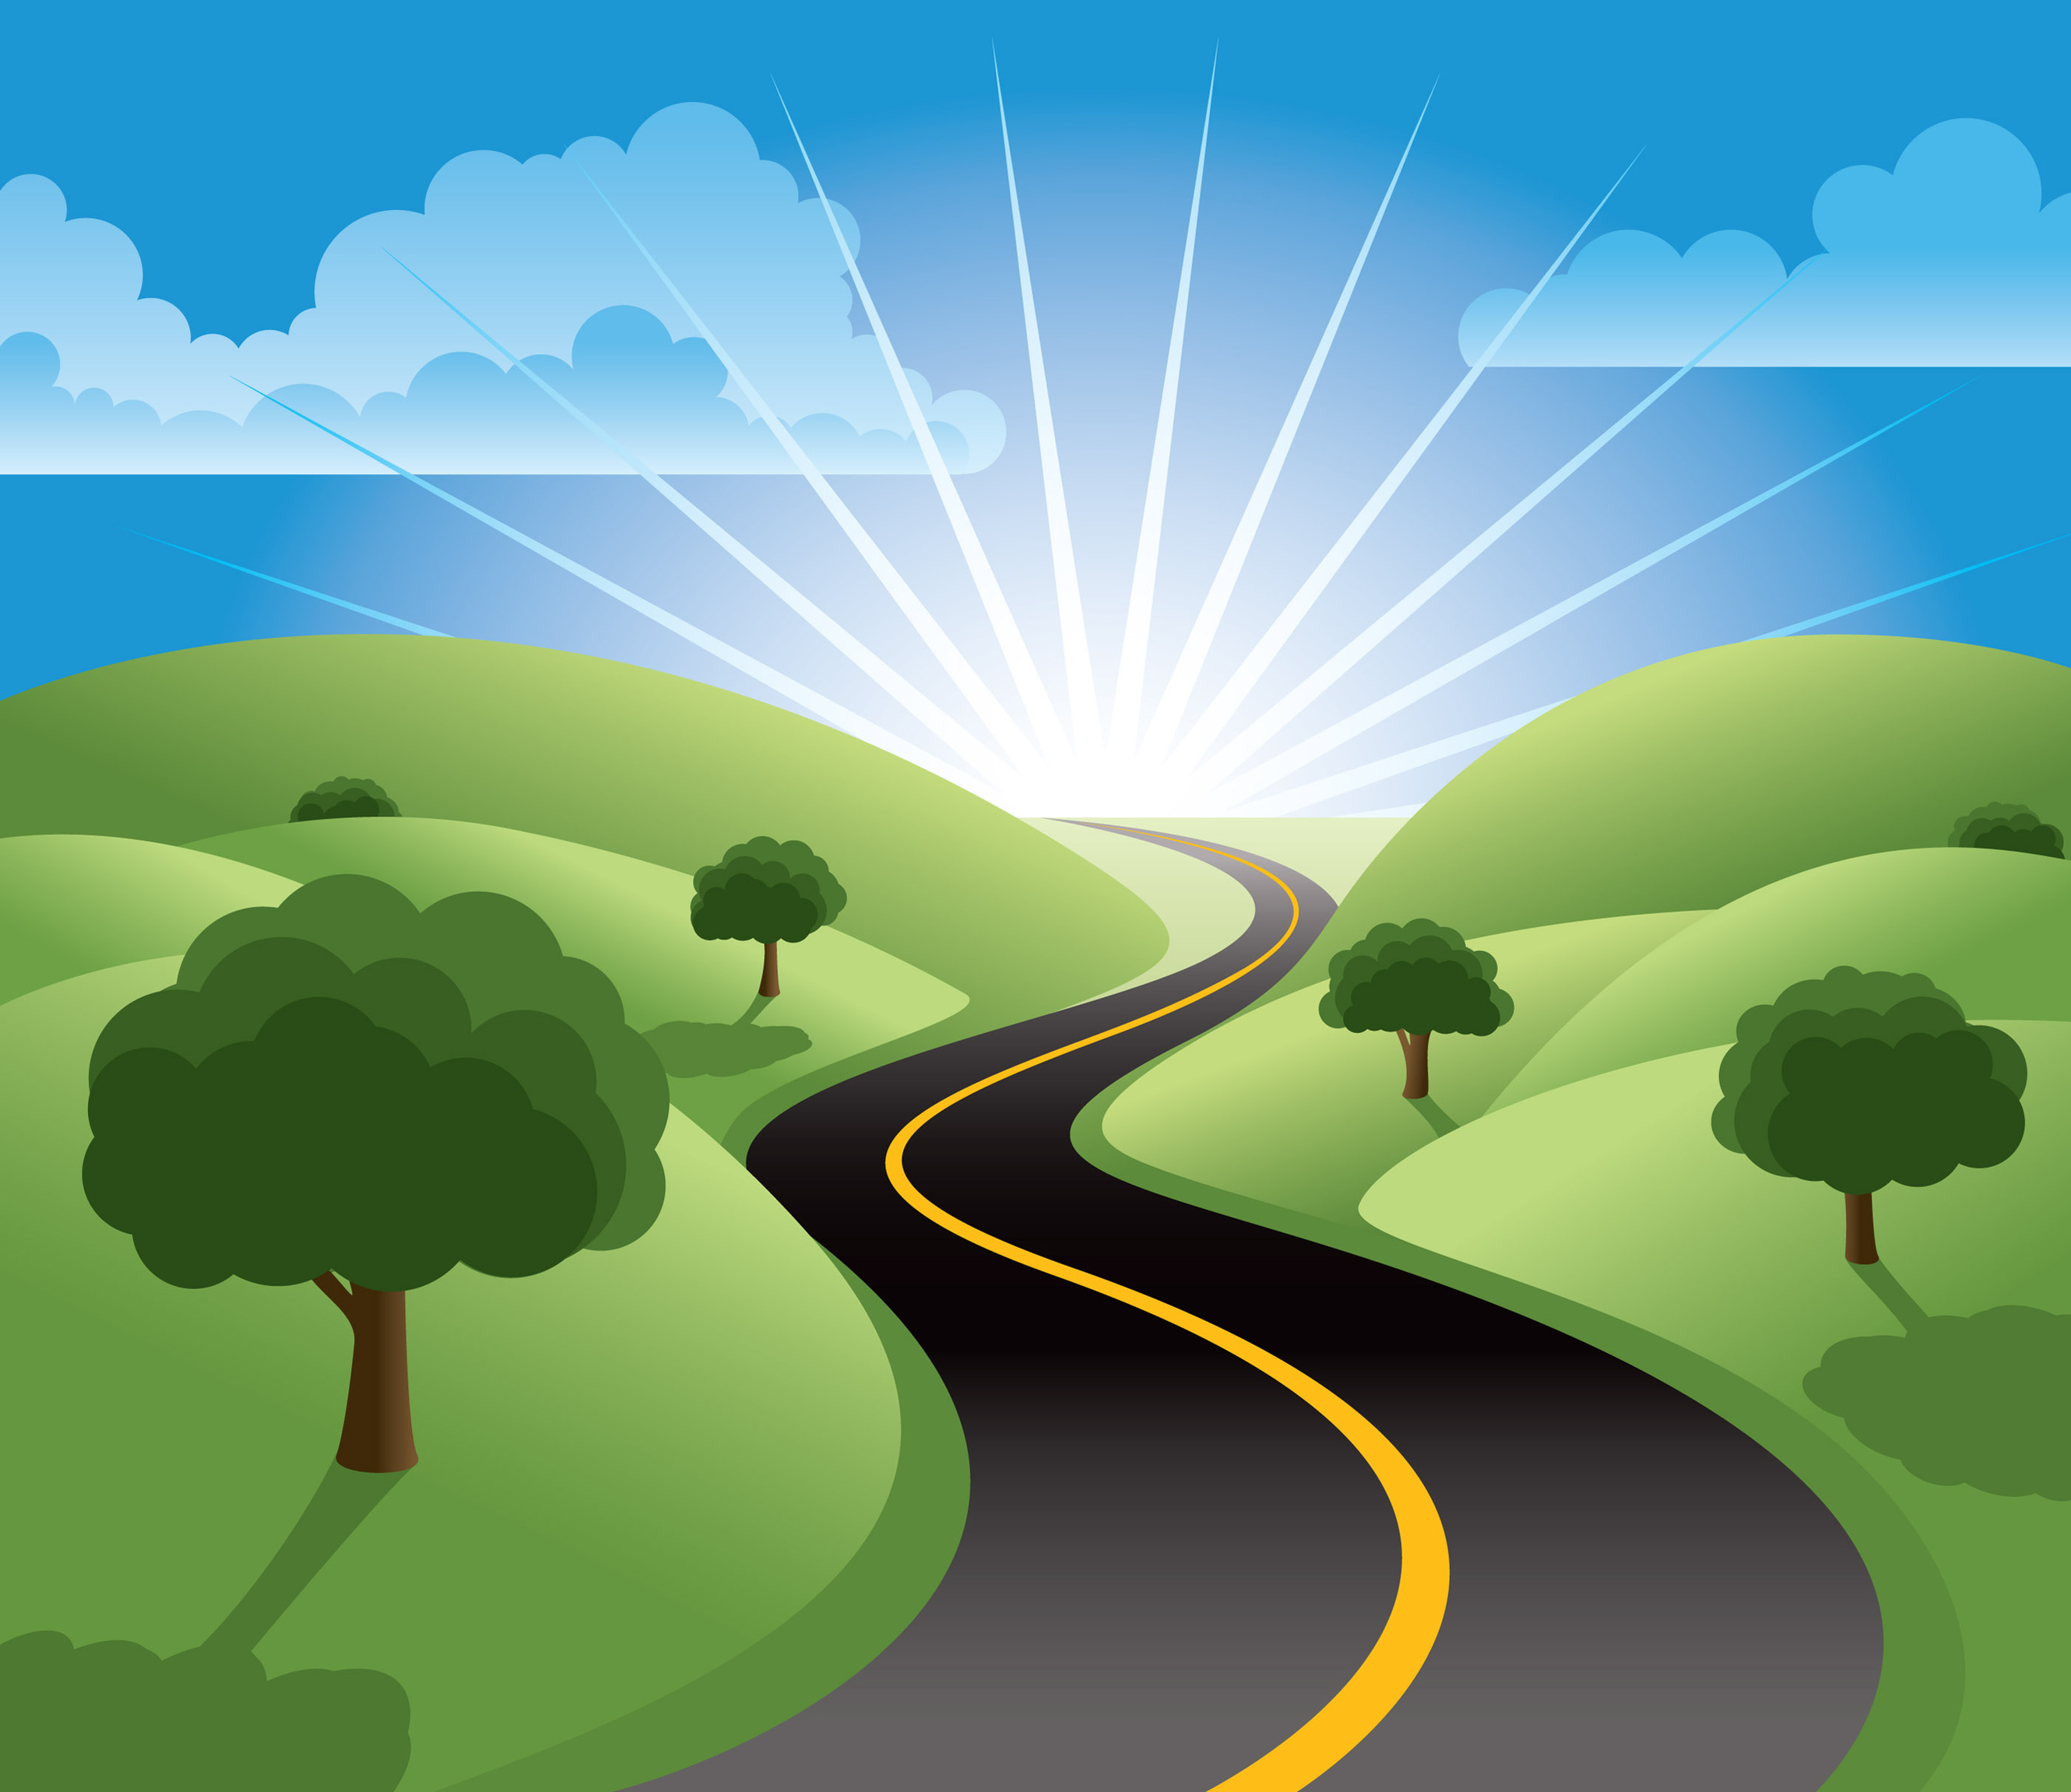 Background clipart road.  collection of high